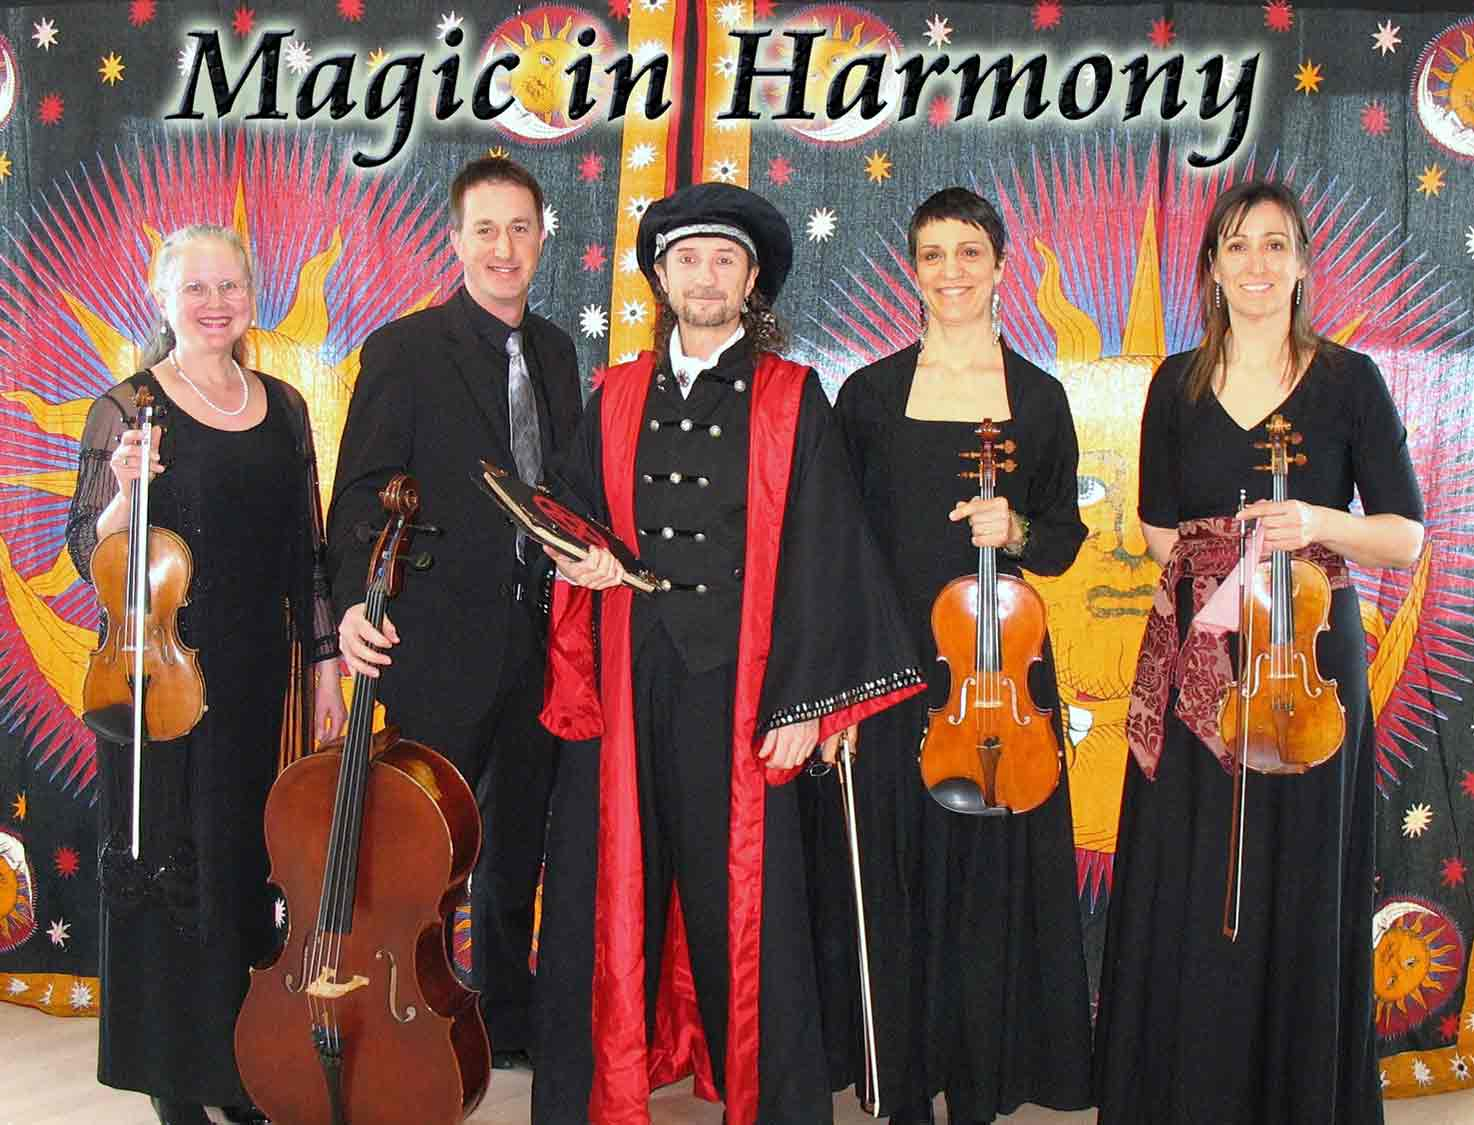 The illusionist Loran - Biography - Show Magic in Harmony with I Musici